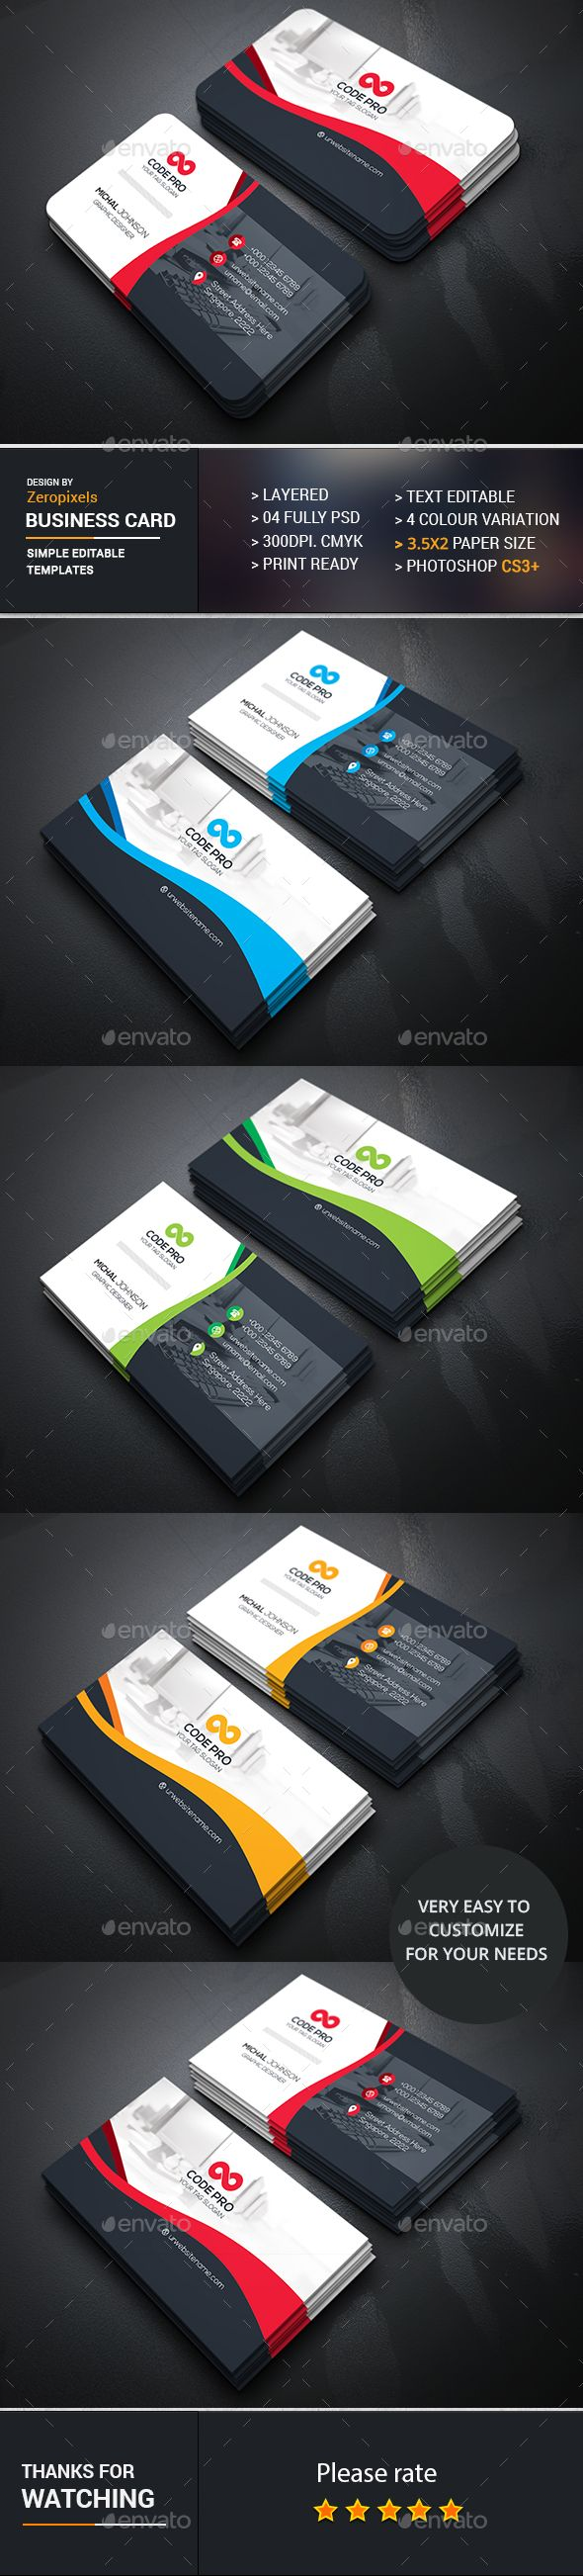 204 best buisness card images on pinterest business card design corporate business card photoshop psd package designer available here https reheart Choice Image